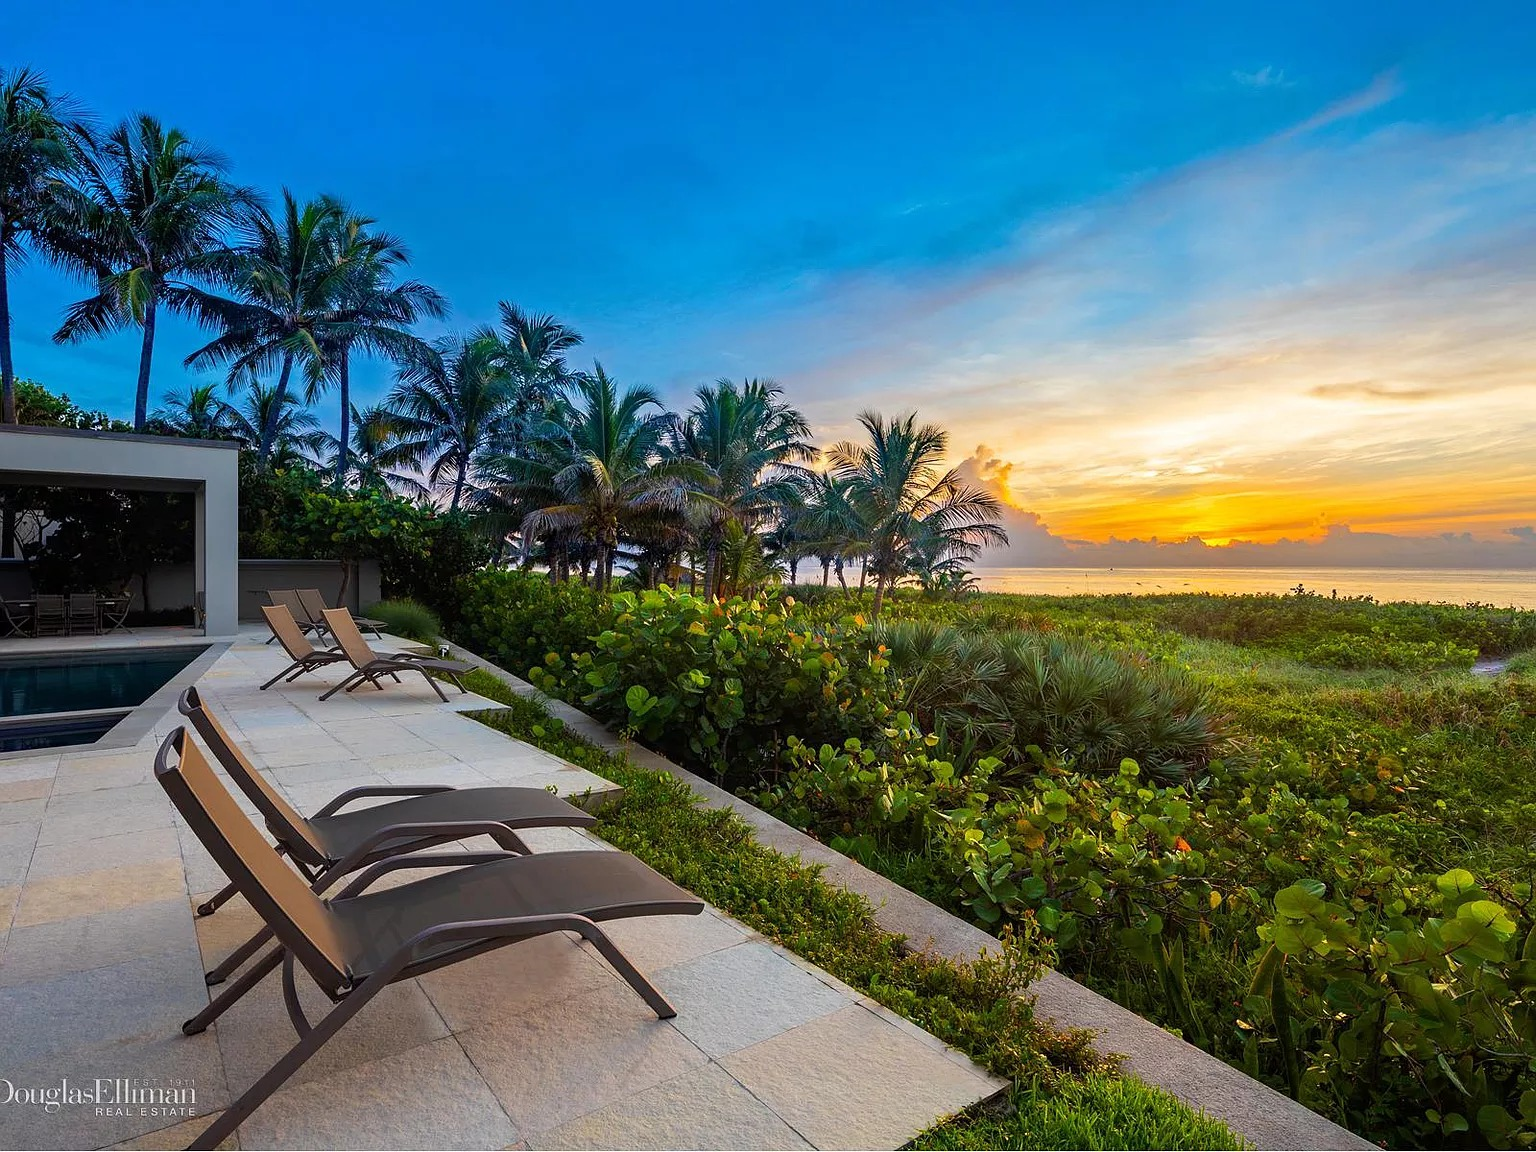 711 N Ocean Blvd, Delray Beach, FL 33483 - $12,995,000 home for sale, house images, photos and pics gallery